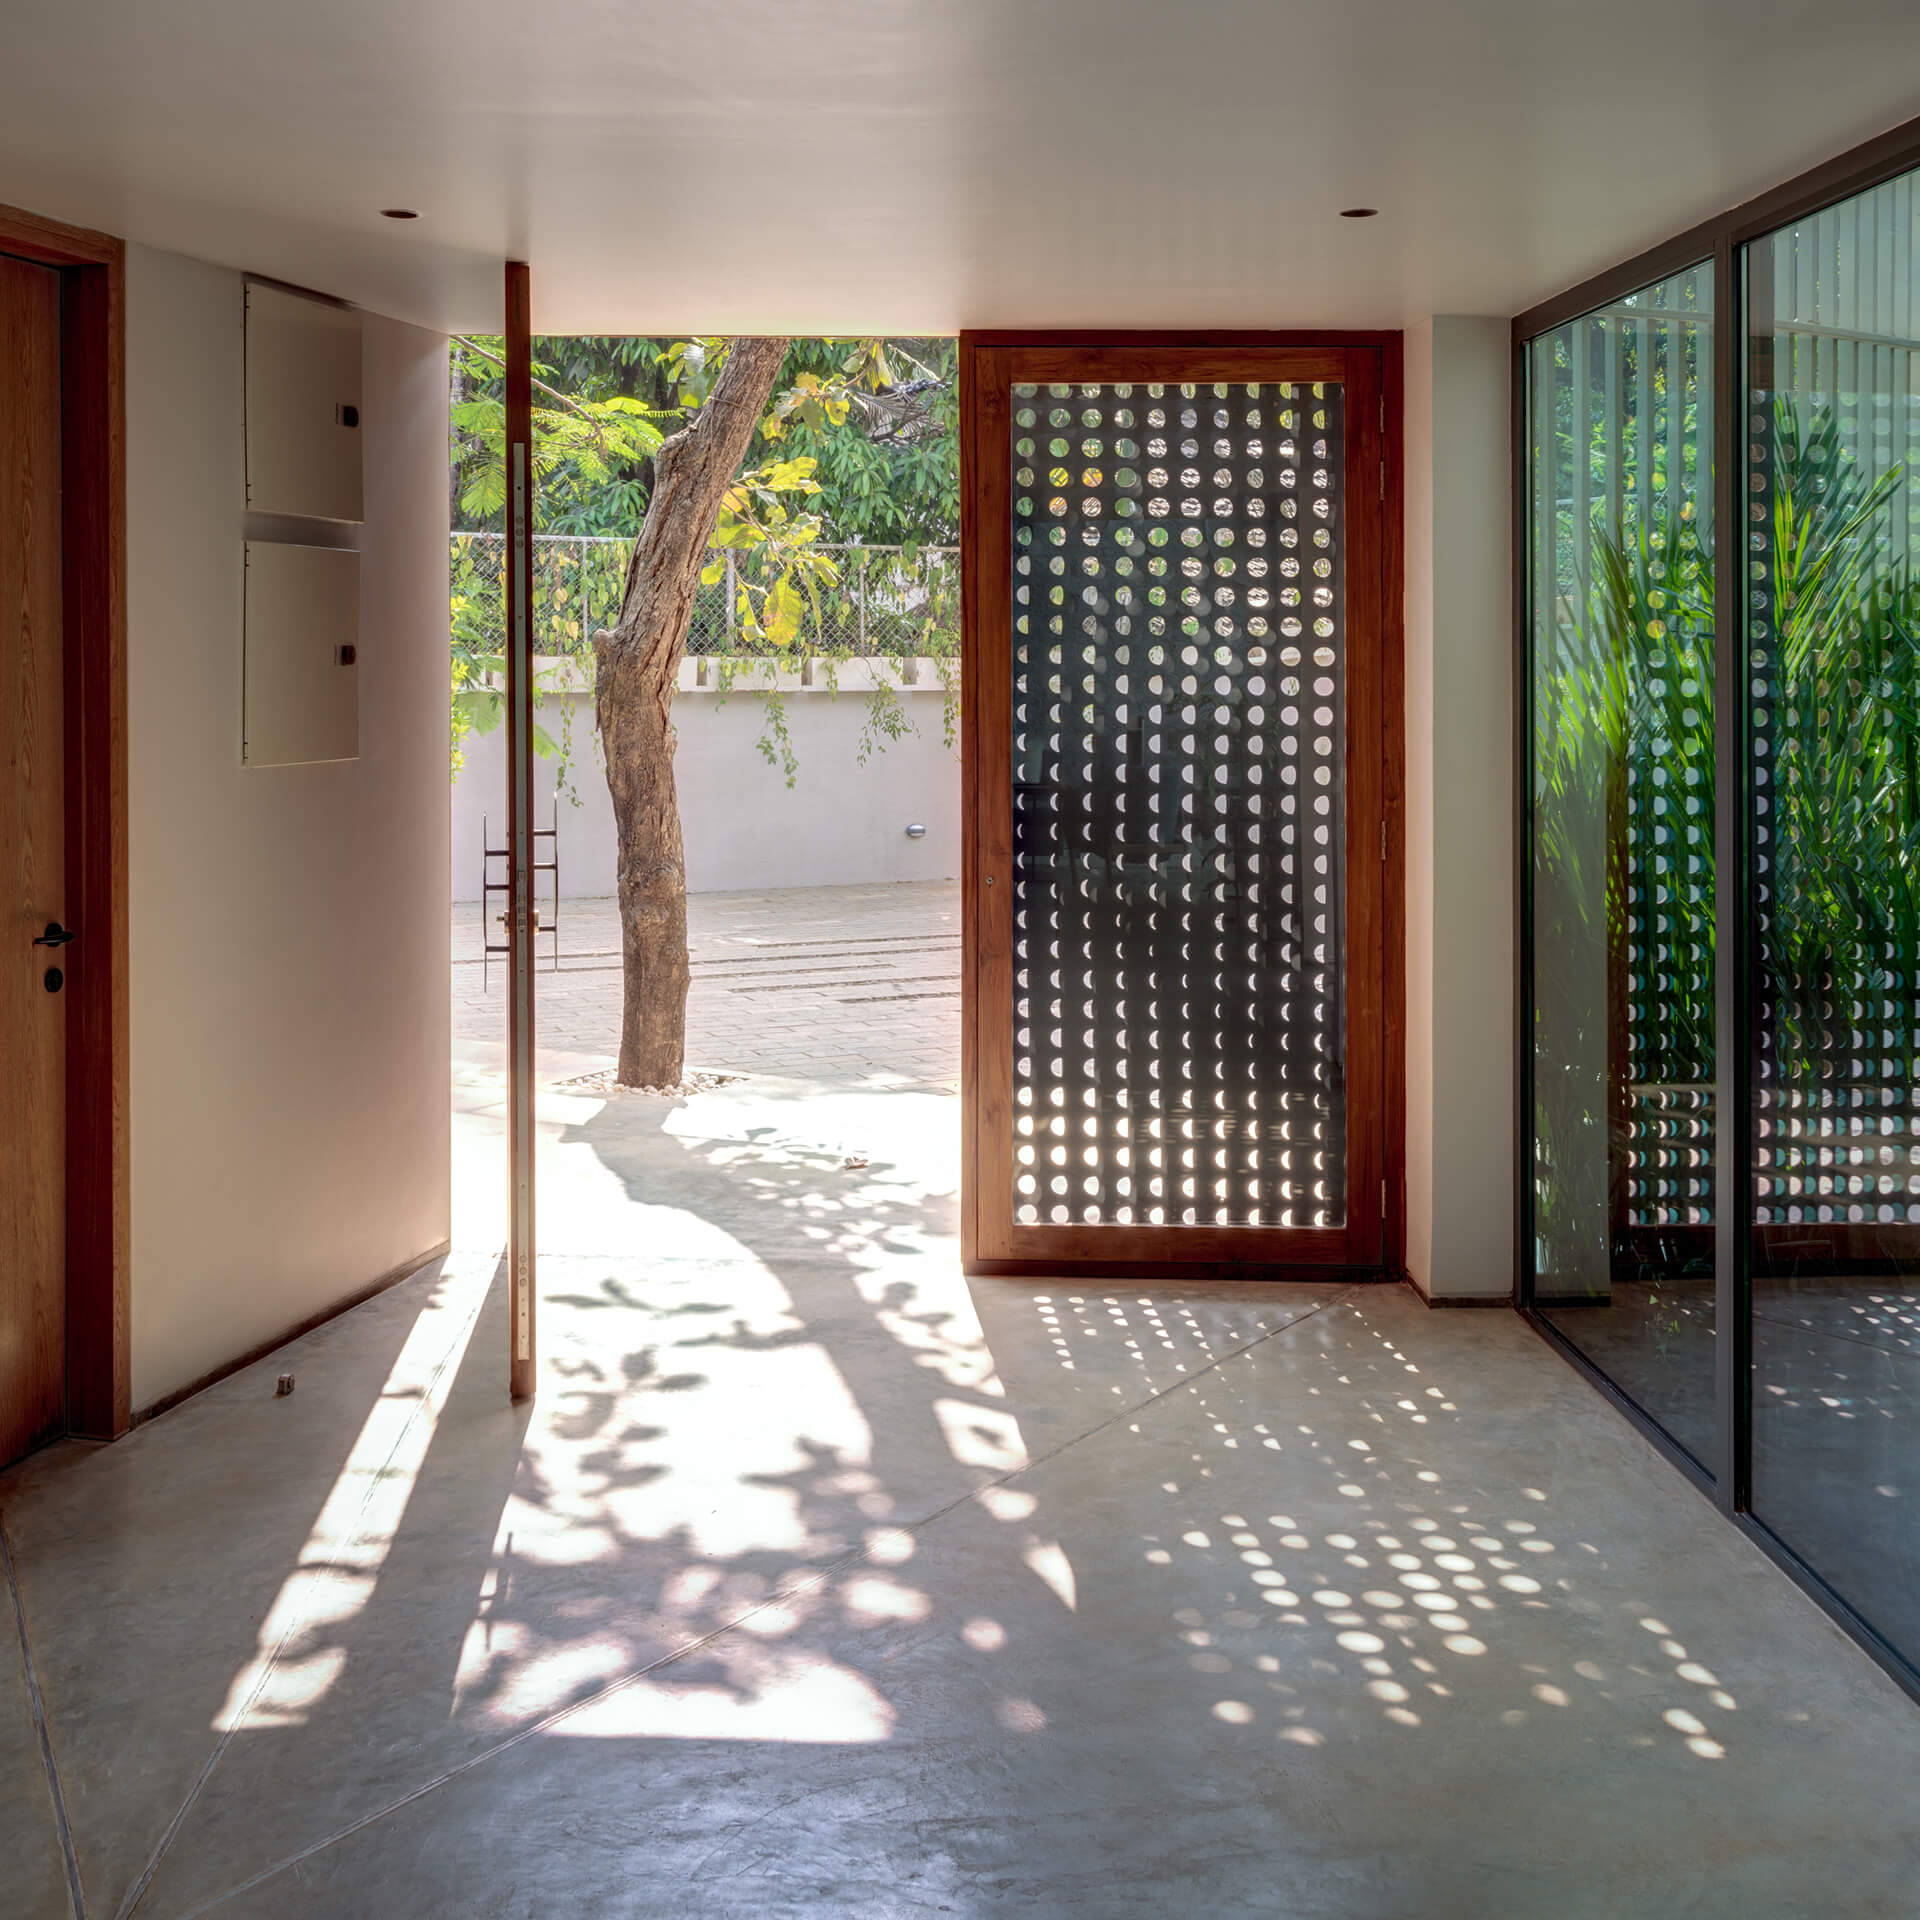 Light filtering through moon motifs at Lua house's entrance door | Lua and Terra Si-oul villas by Kriss Real Estate and SAV architects | STIRworld